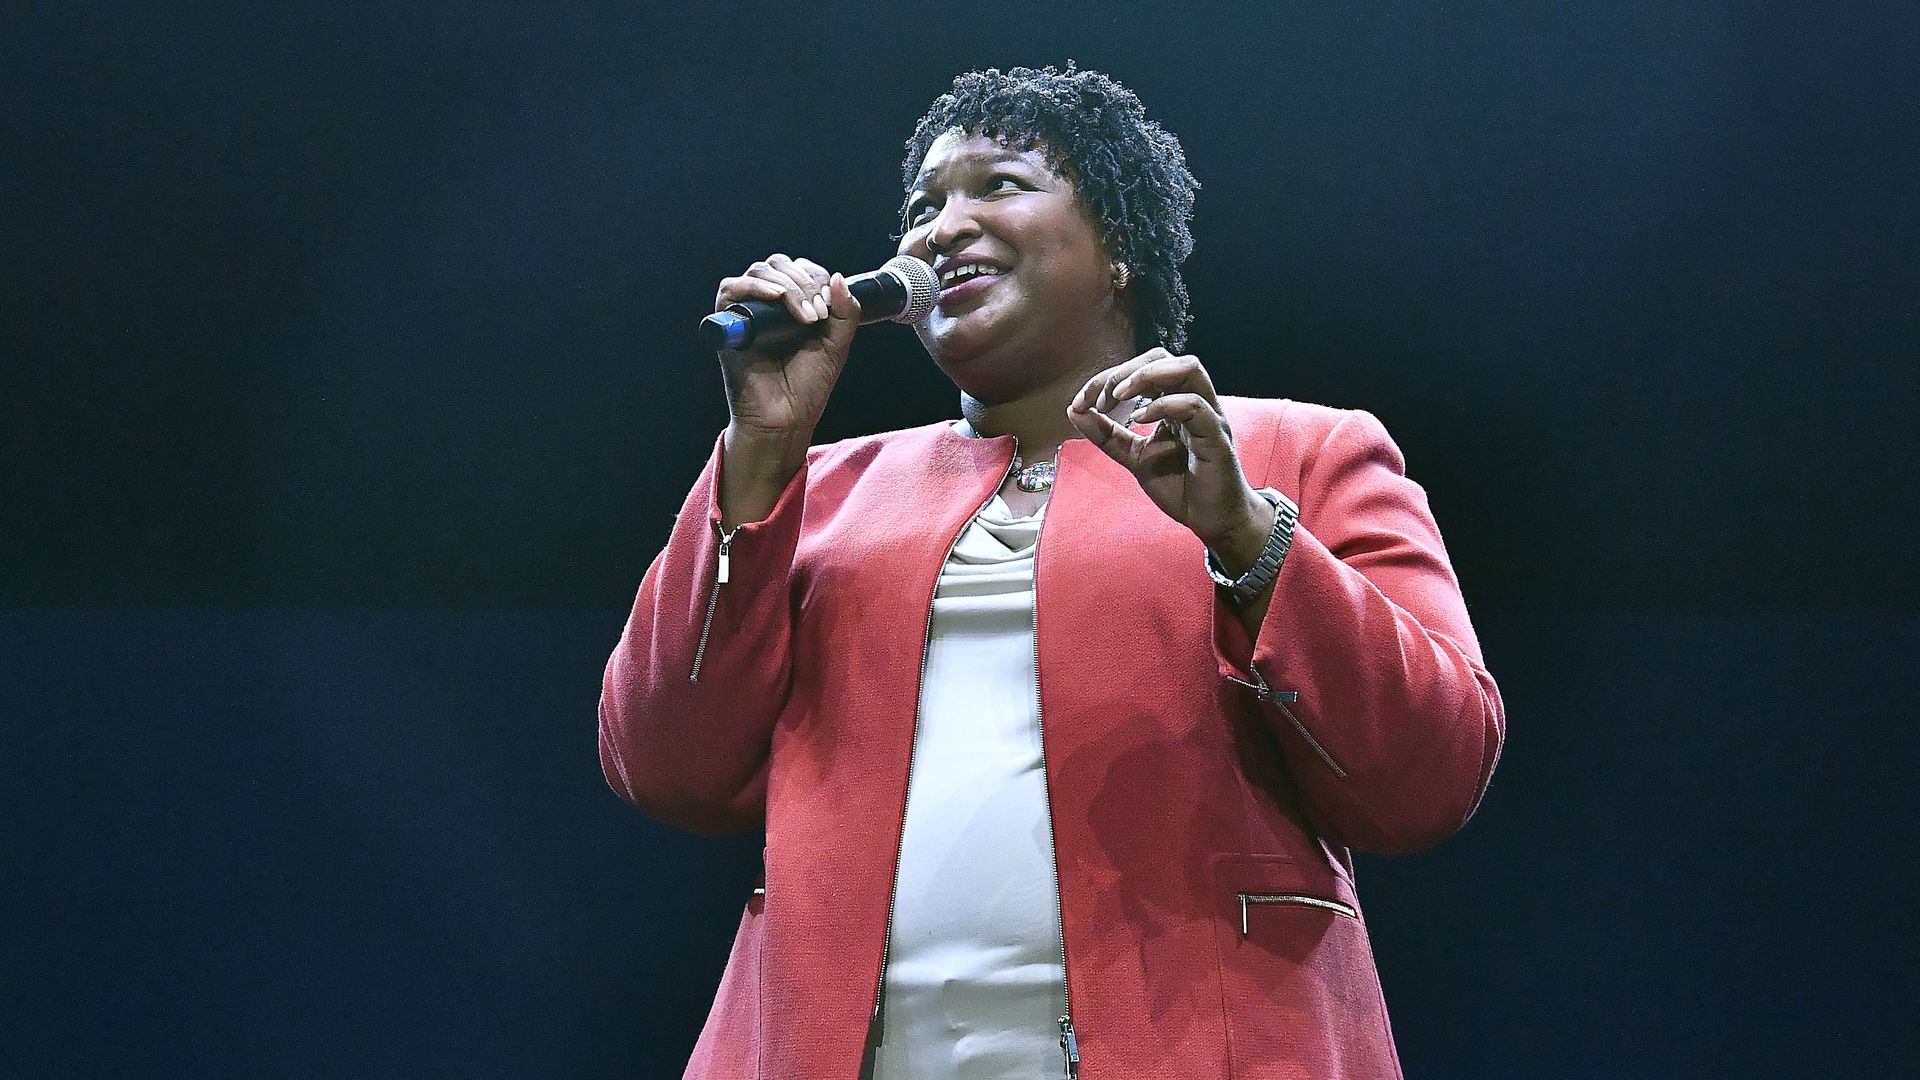 Stacey Abrams democratic cadidate for georgia governor.